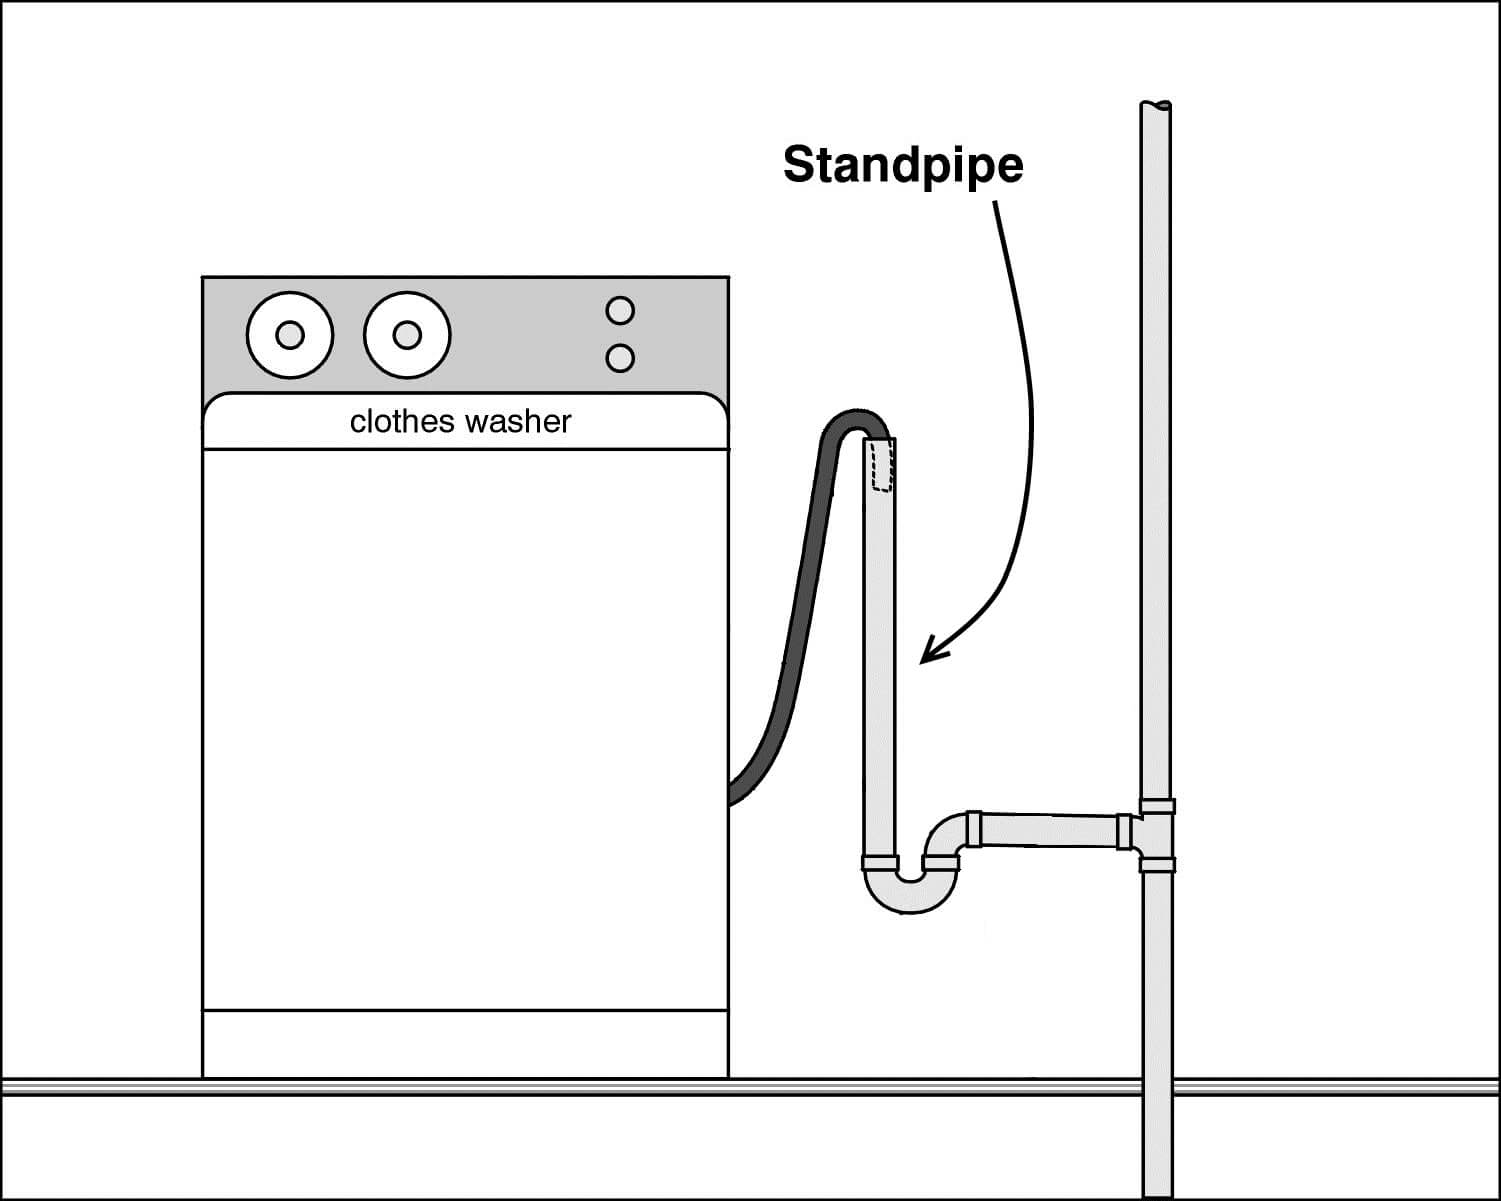 Stinky Laundry Room Bathroom Check Your Traps Rapid Electric Dryer Wiring Diagram For Stand Standpipe